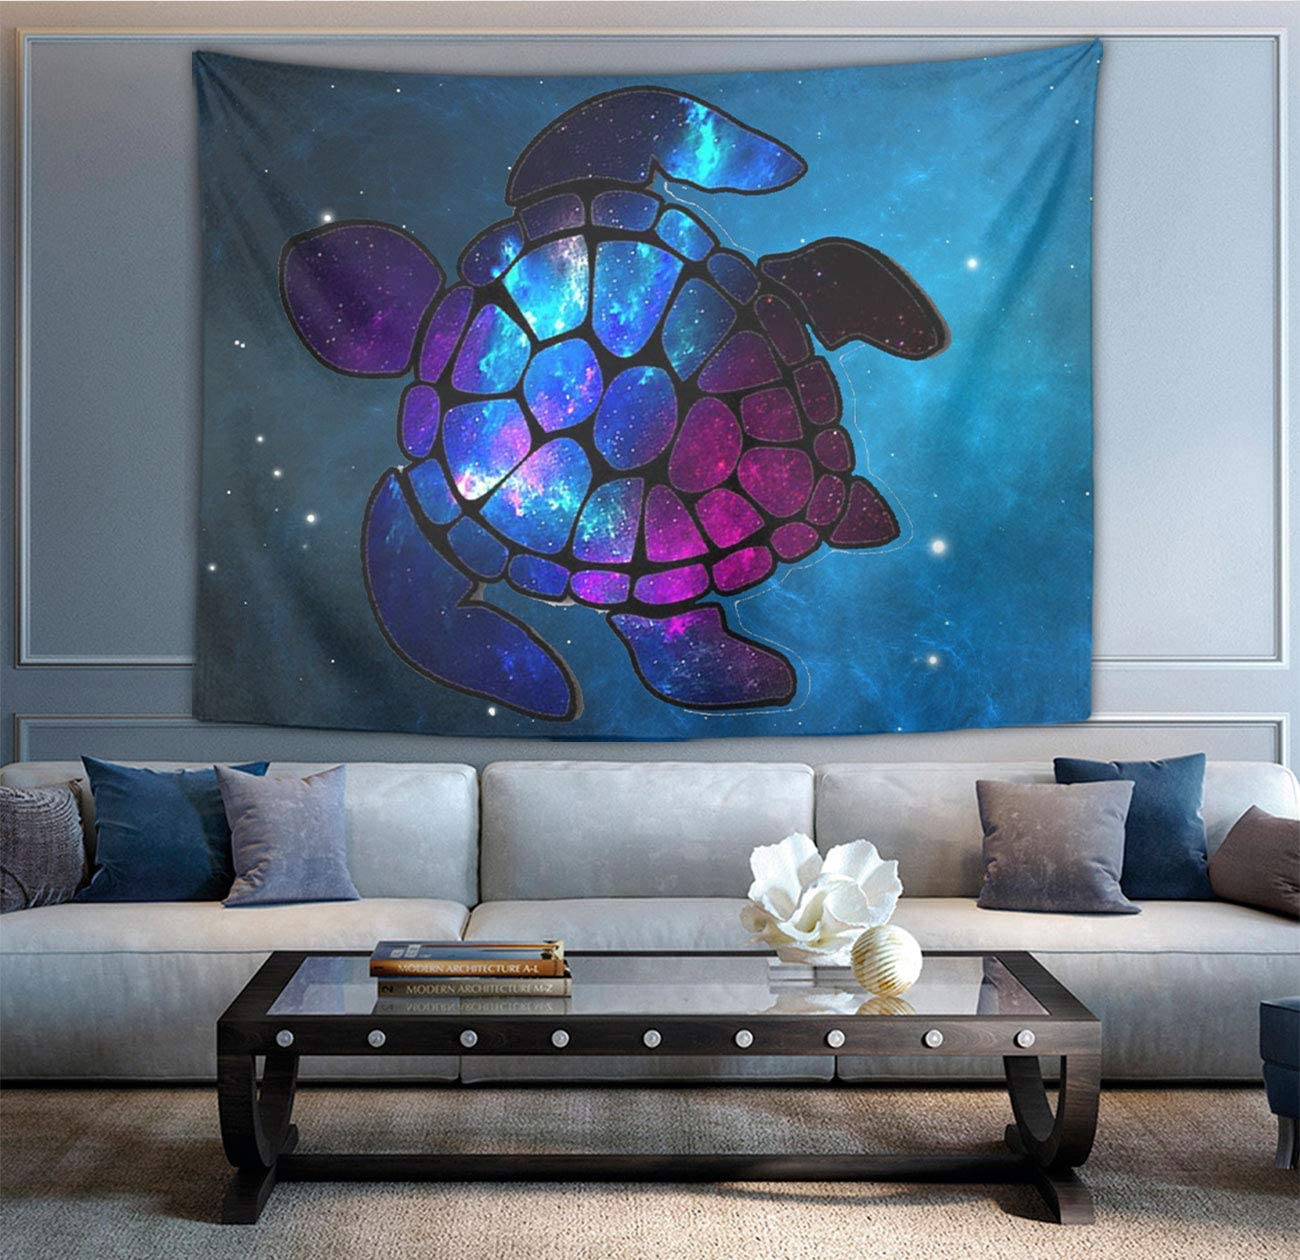 NiYoung Great Gift – Wall Blanket Wall Art – Sea Turtle Galaxy Tapestry Wall Tapestry Wall Art Decoration Home Decor for Bedroom, Dorm, College, Living Room 60 X 90